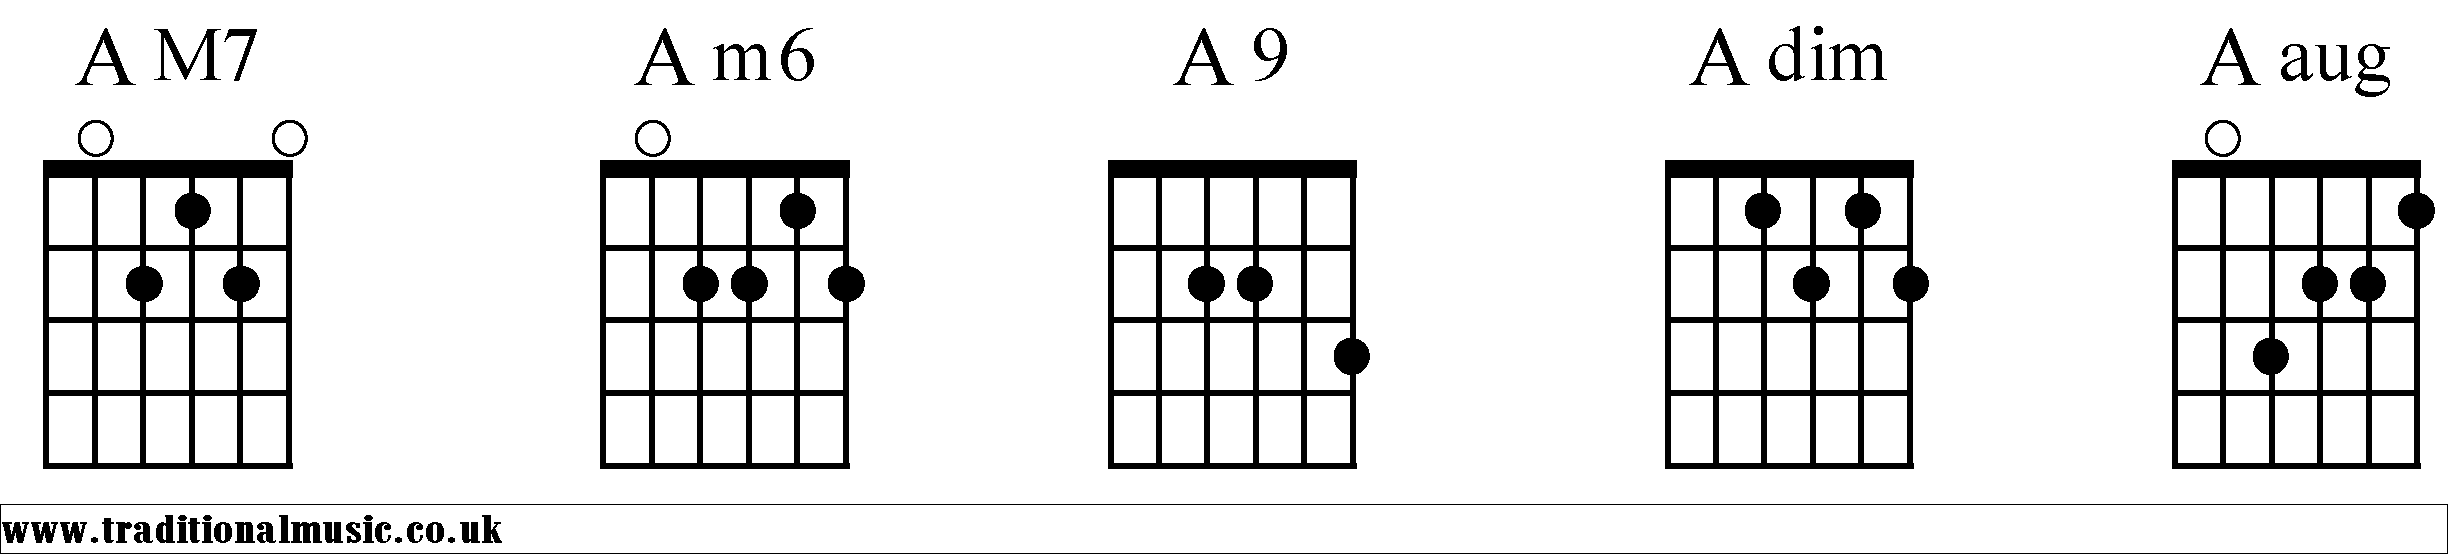 Chords for Guitar A